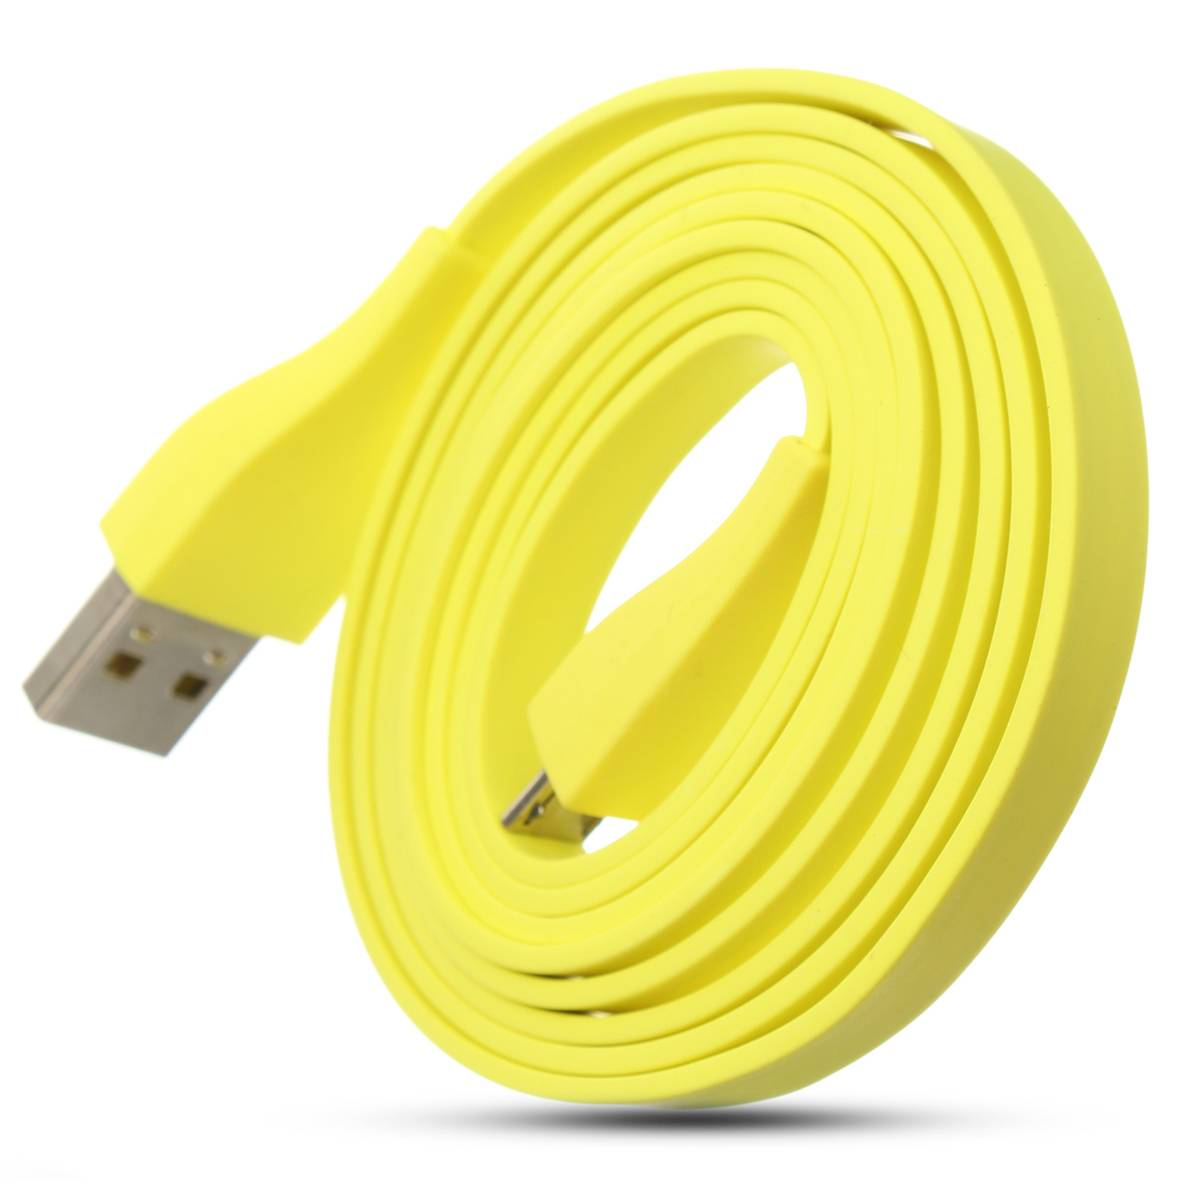 **NEW** Charger Cable for Logitech UE MEGABOOM Bluetooth Speaker Data  Transfer USB Extension Cord